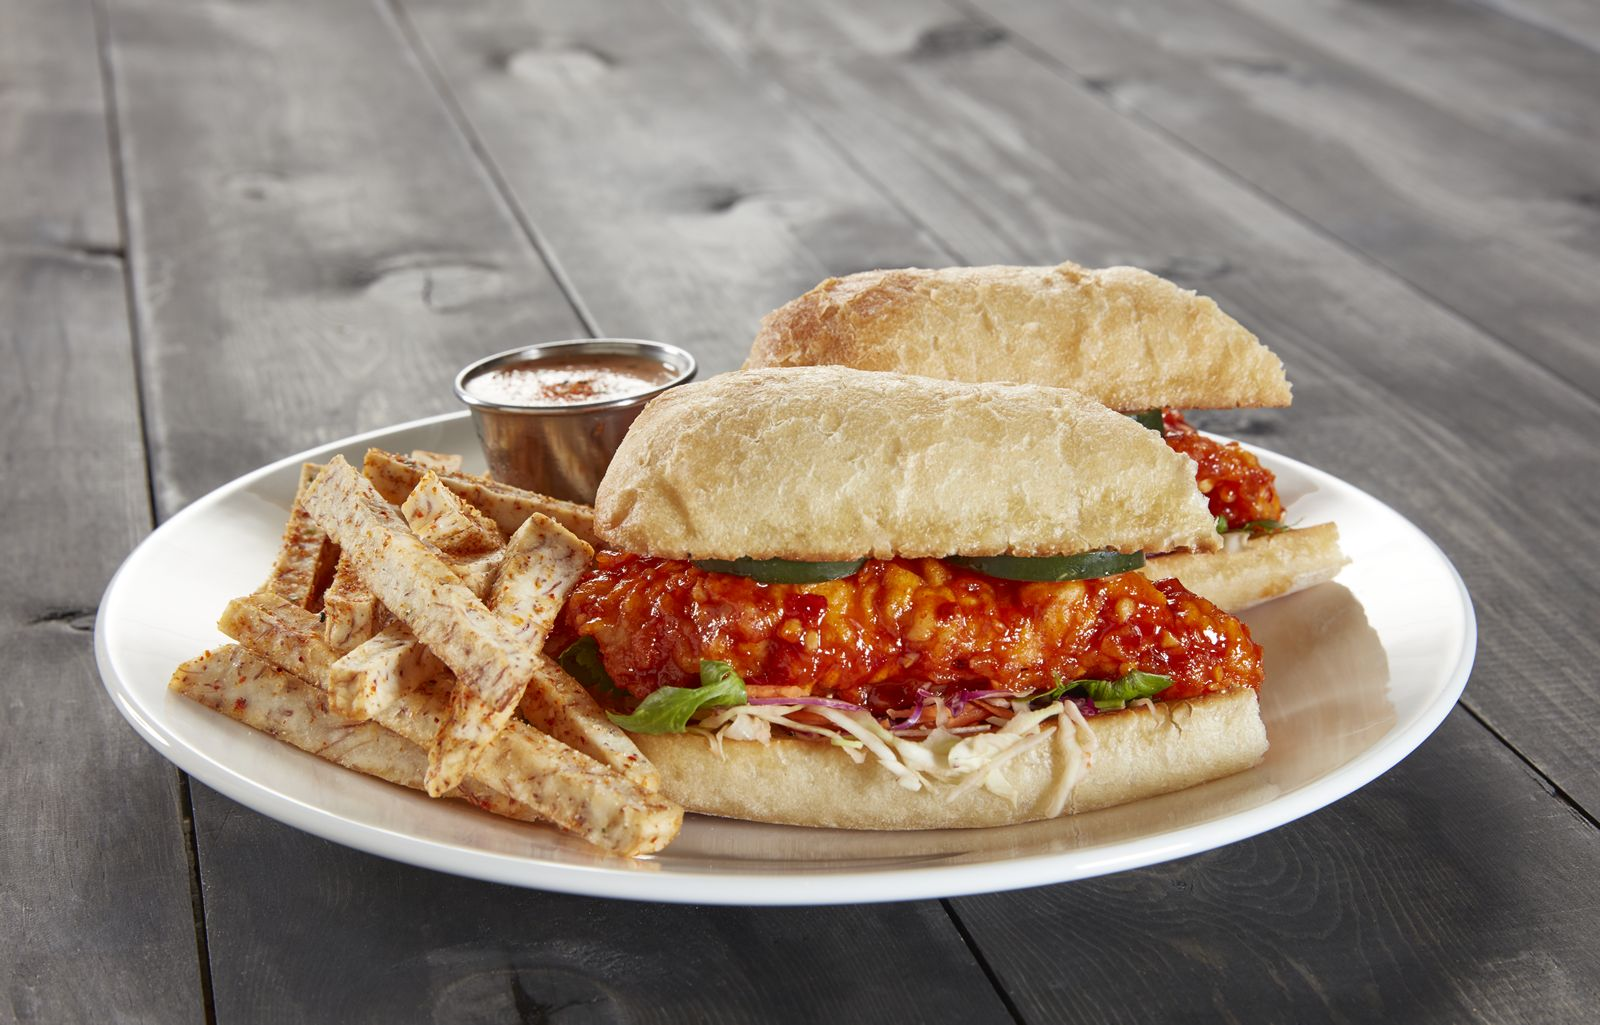 Kona Grill Crispy Korean Chicken Sandwich